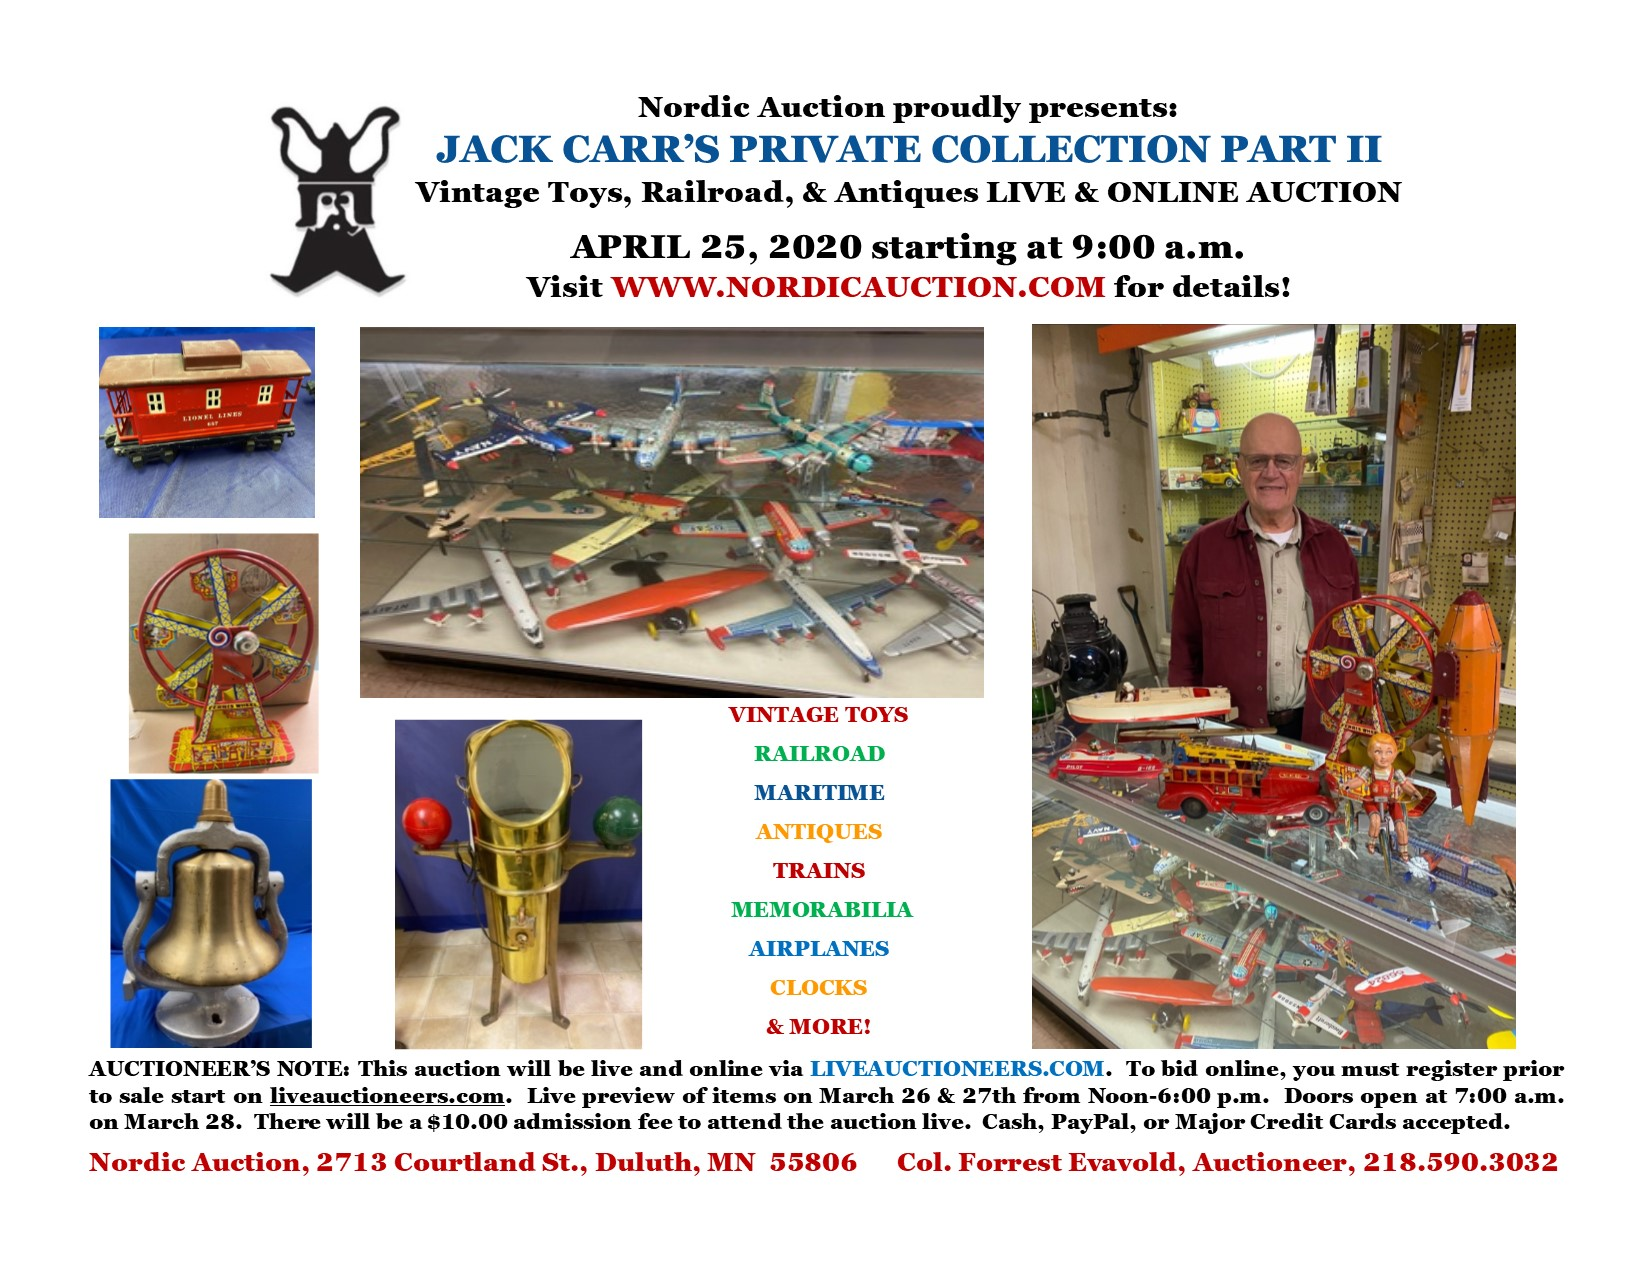 Mr. Jack Carr's Private Collection - Part II